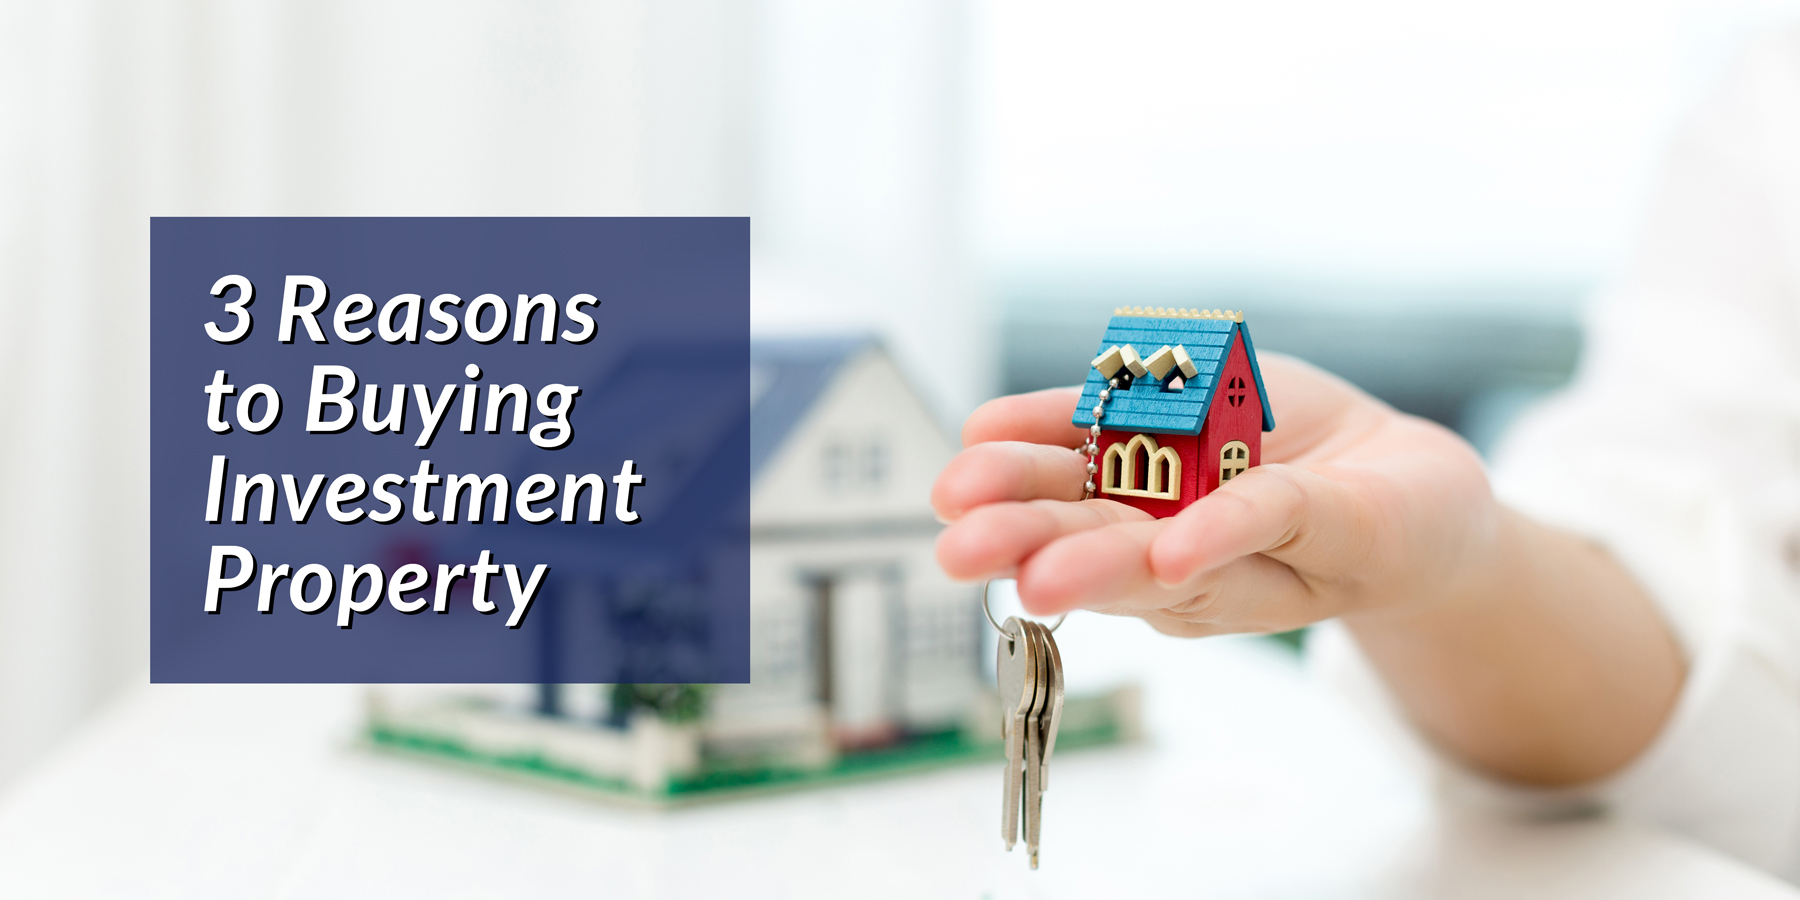 3 Reasons to Buying Investment Property